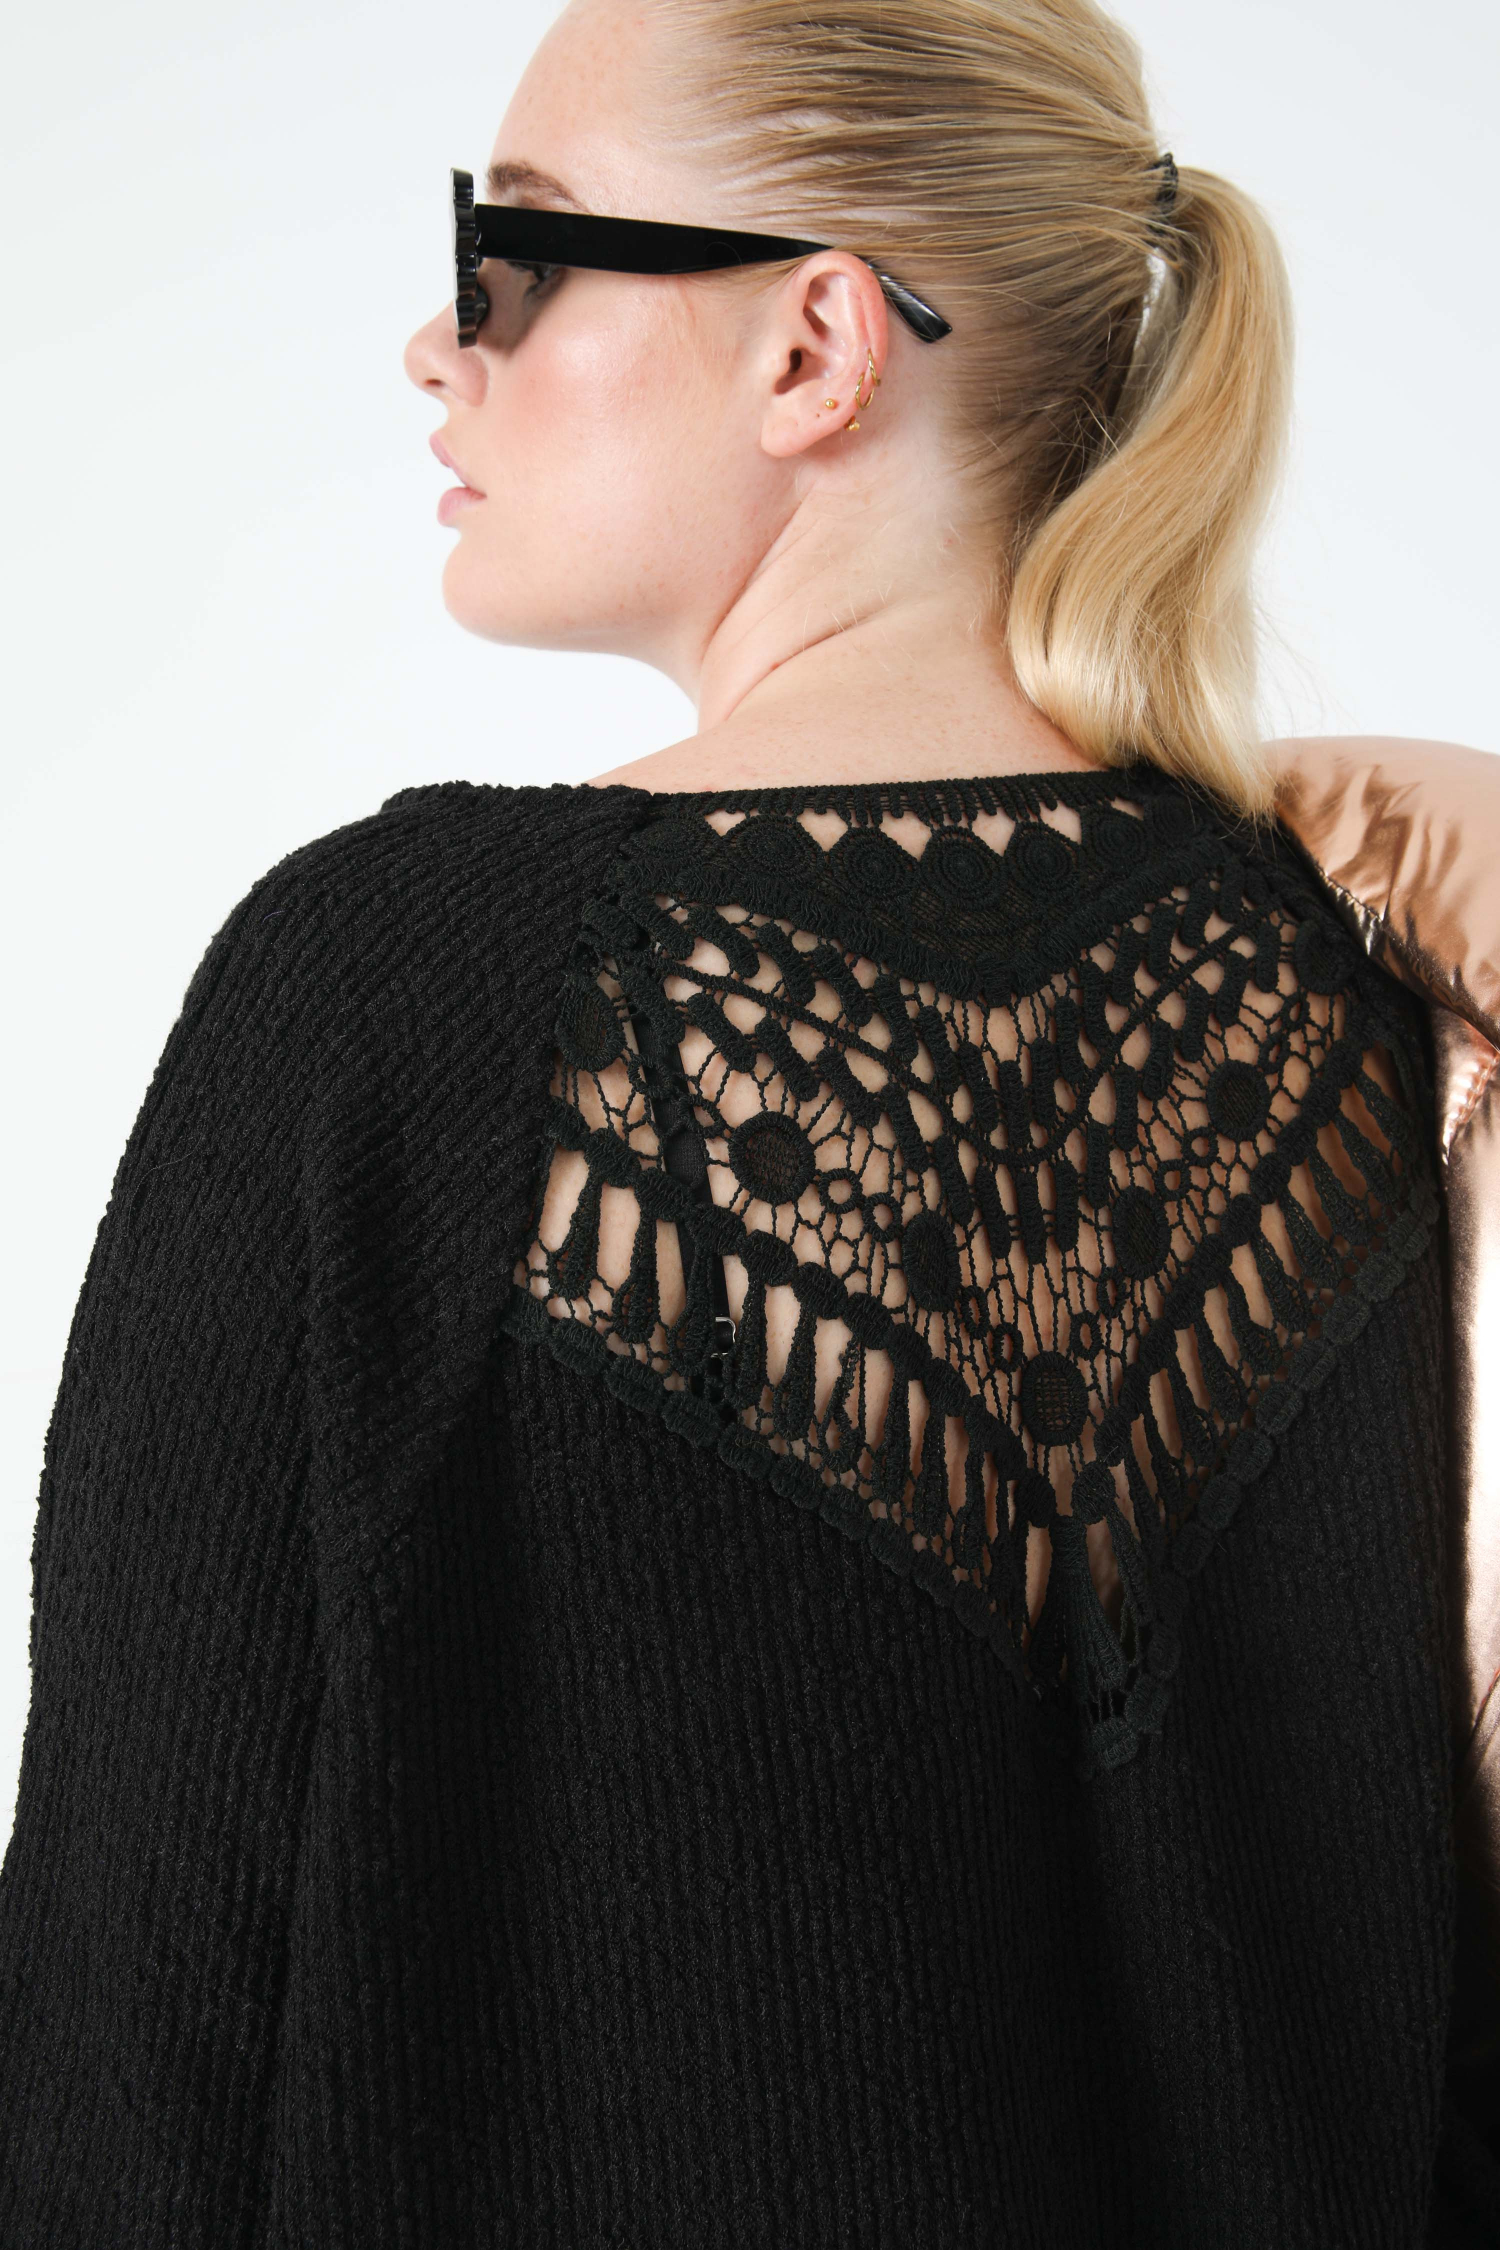 Chenille knit sweater with macrame (shipping September 25 / September 30)